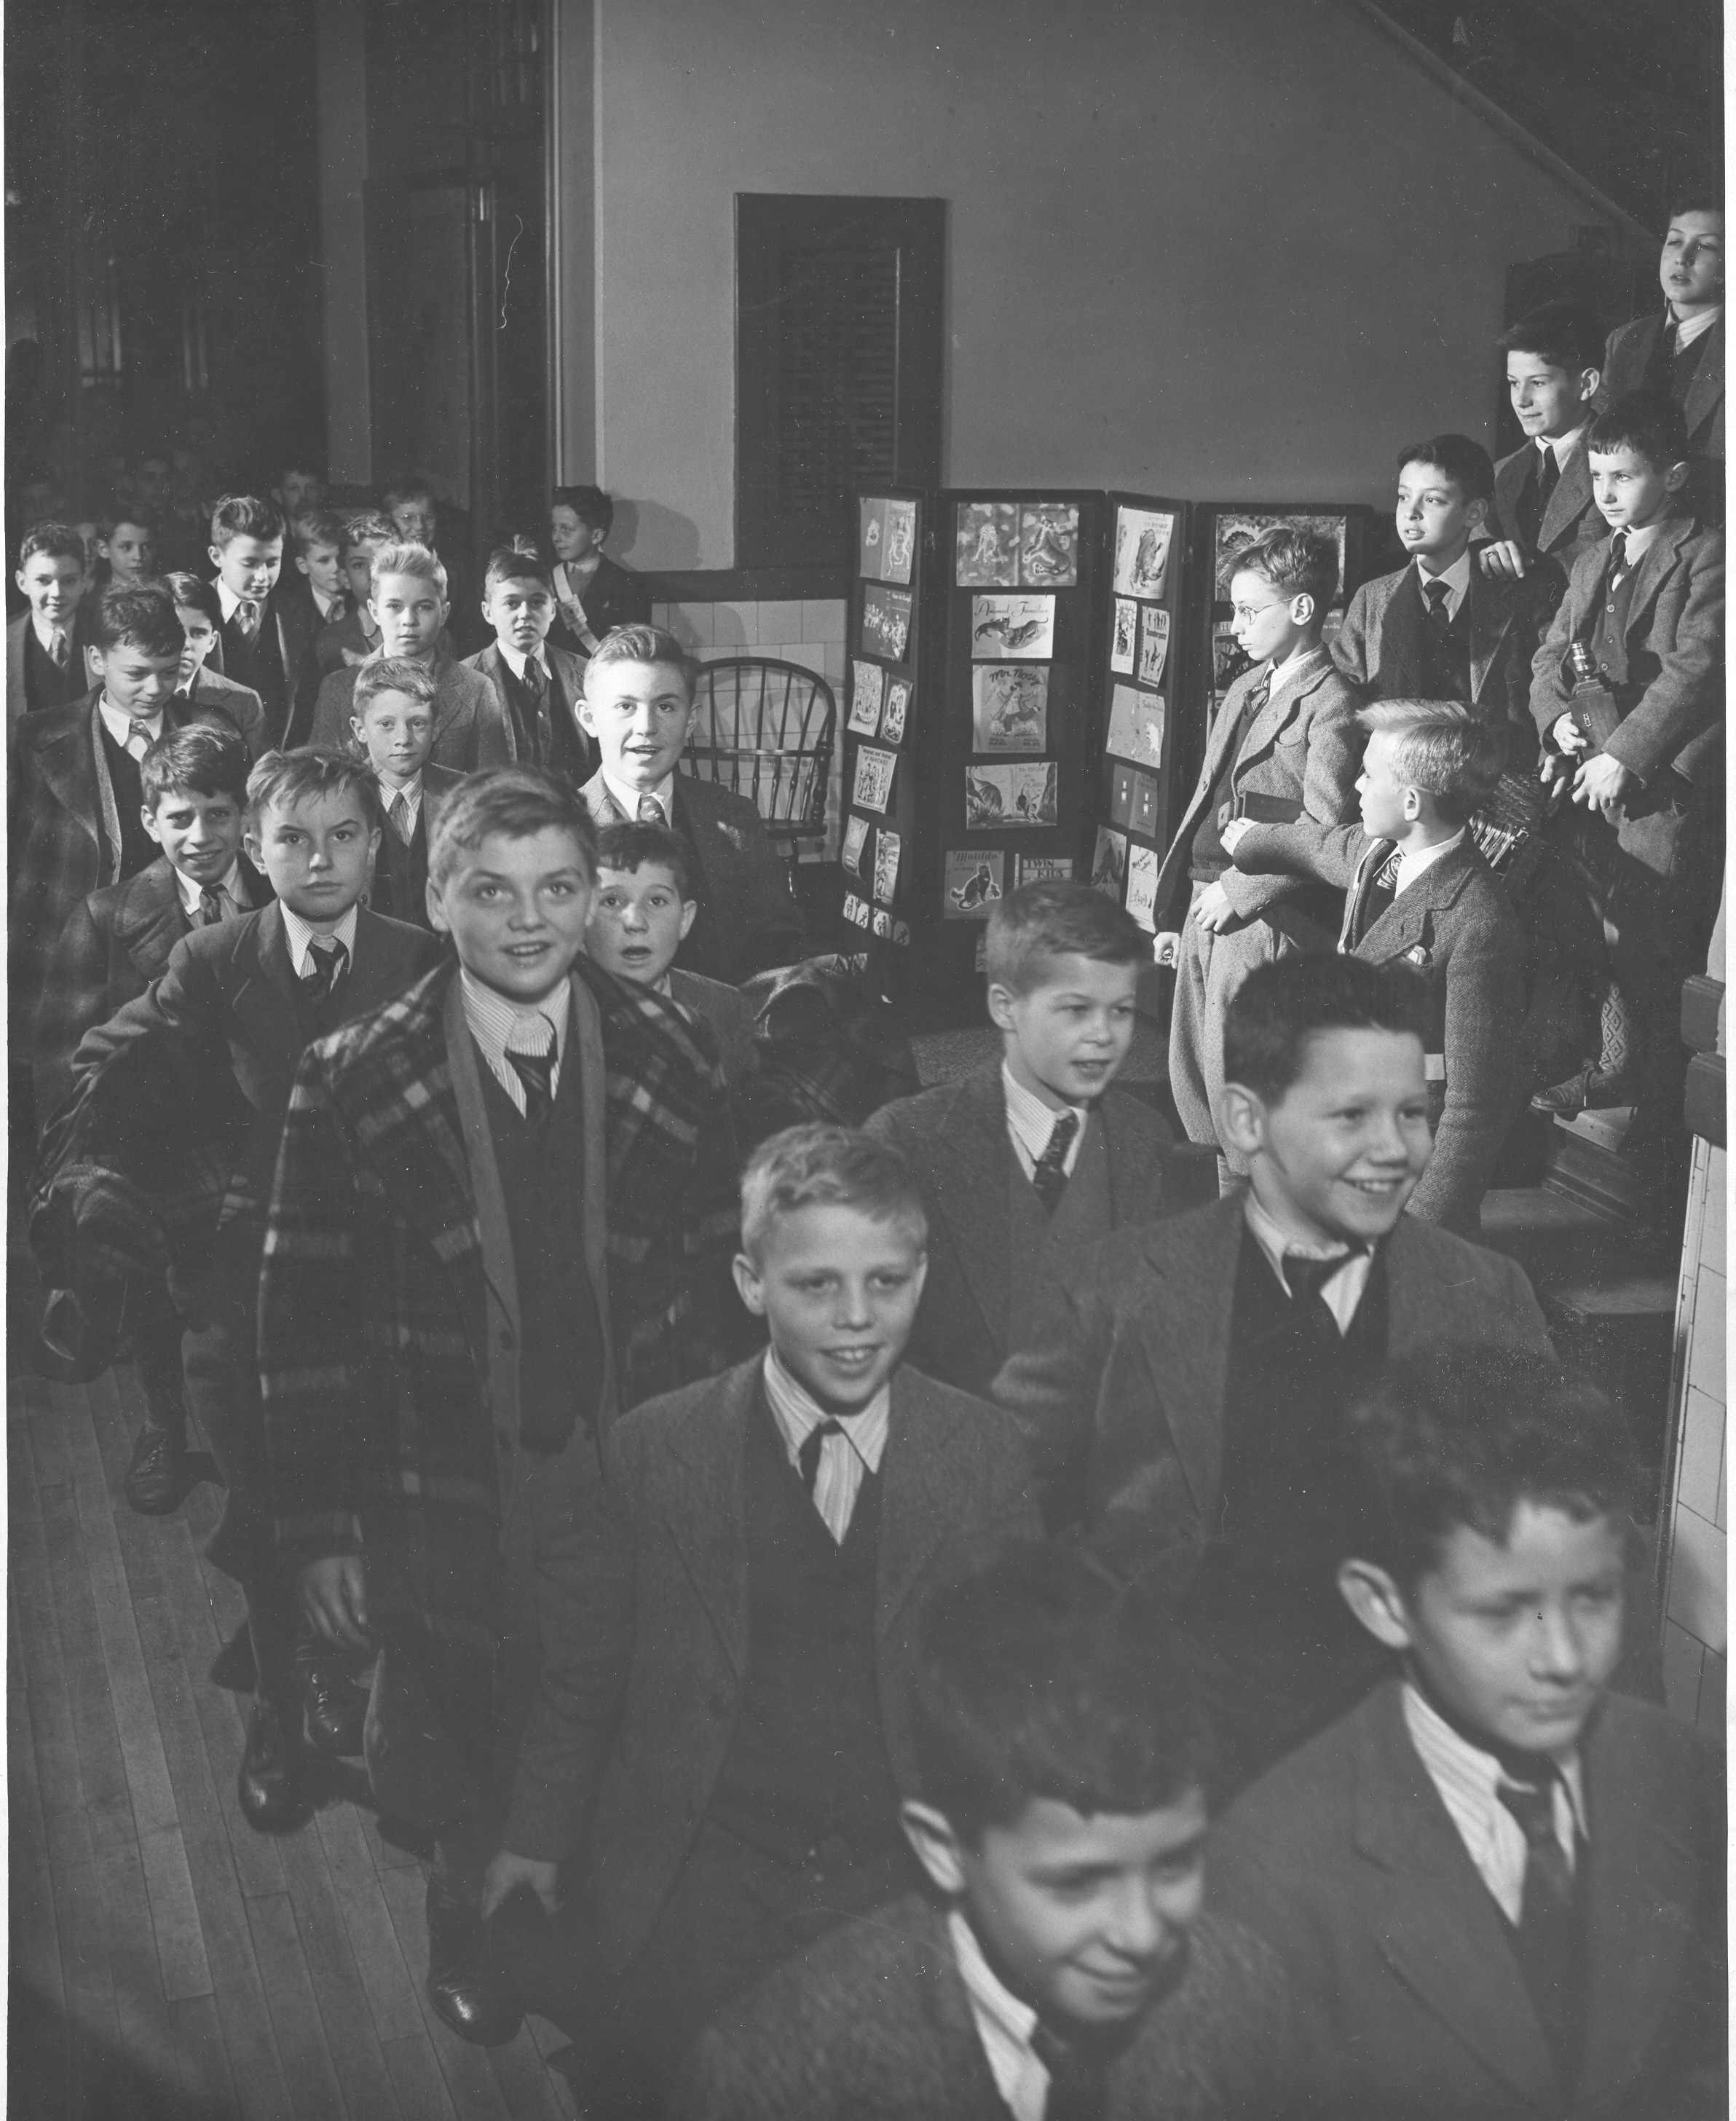 6th grade students moving through the Middle School Building in 1948.